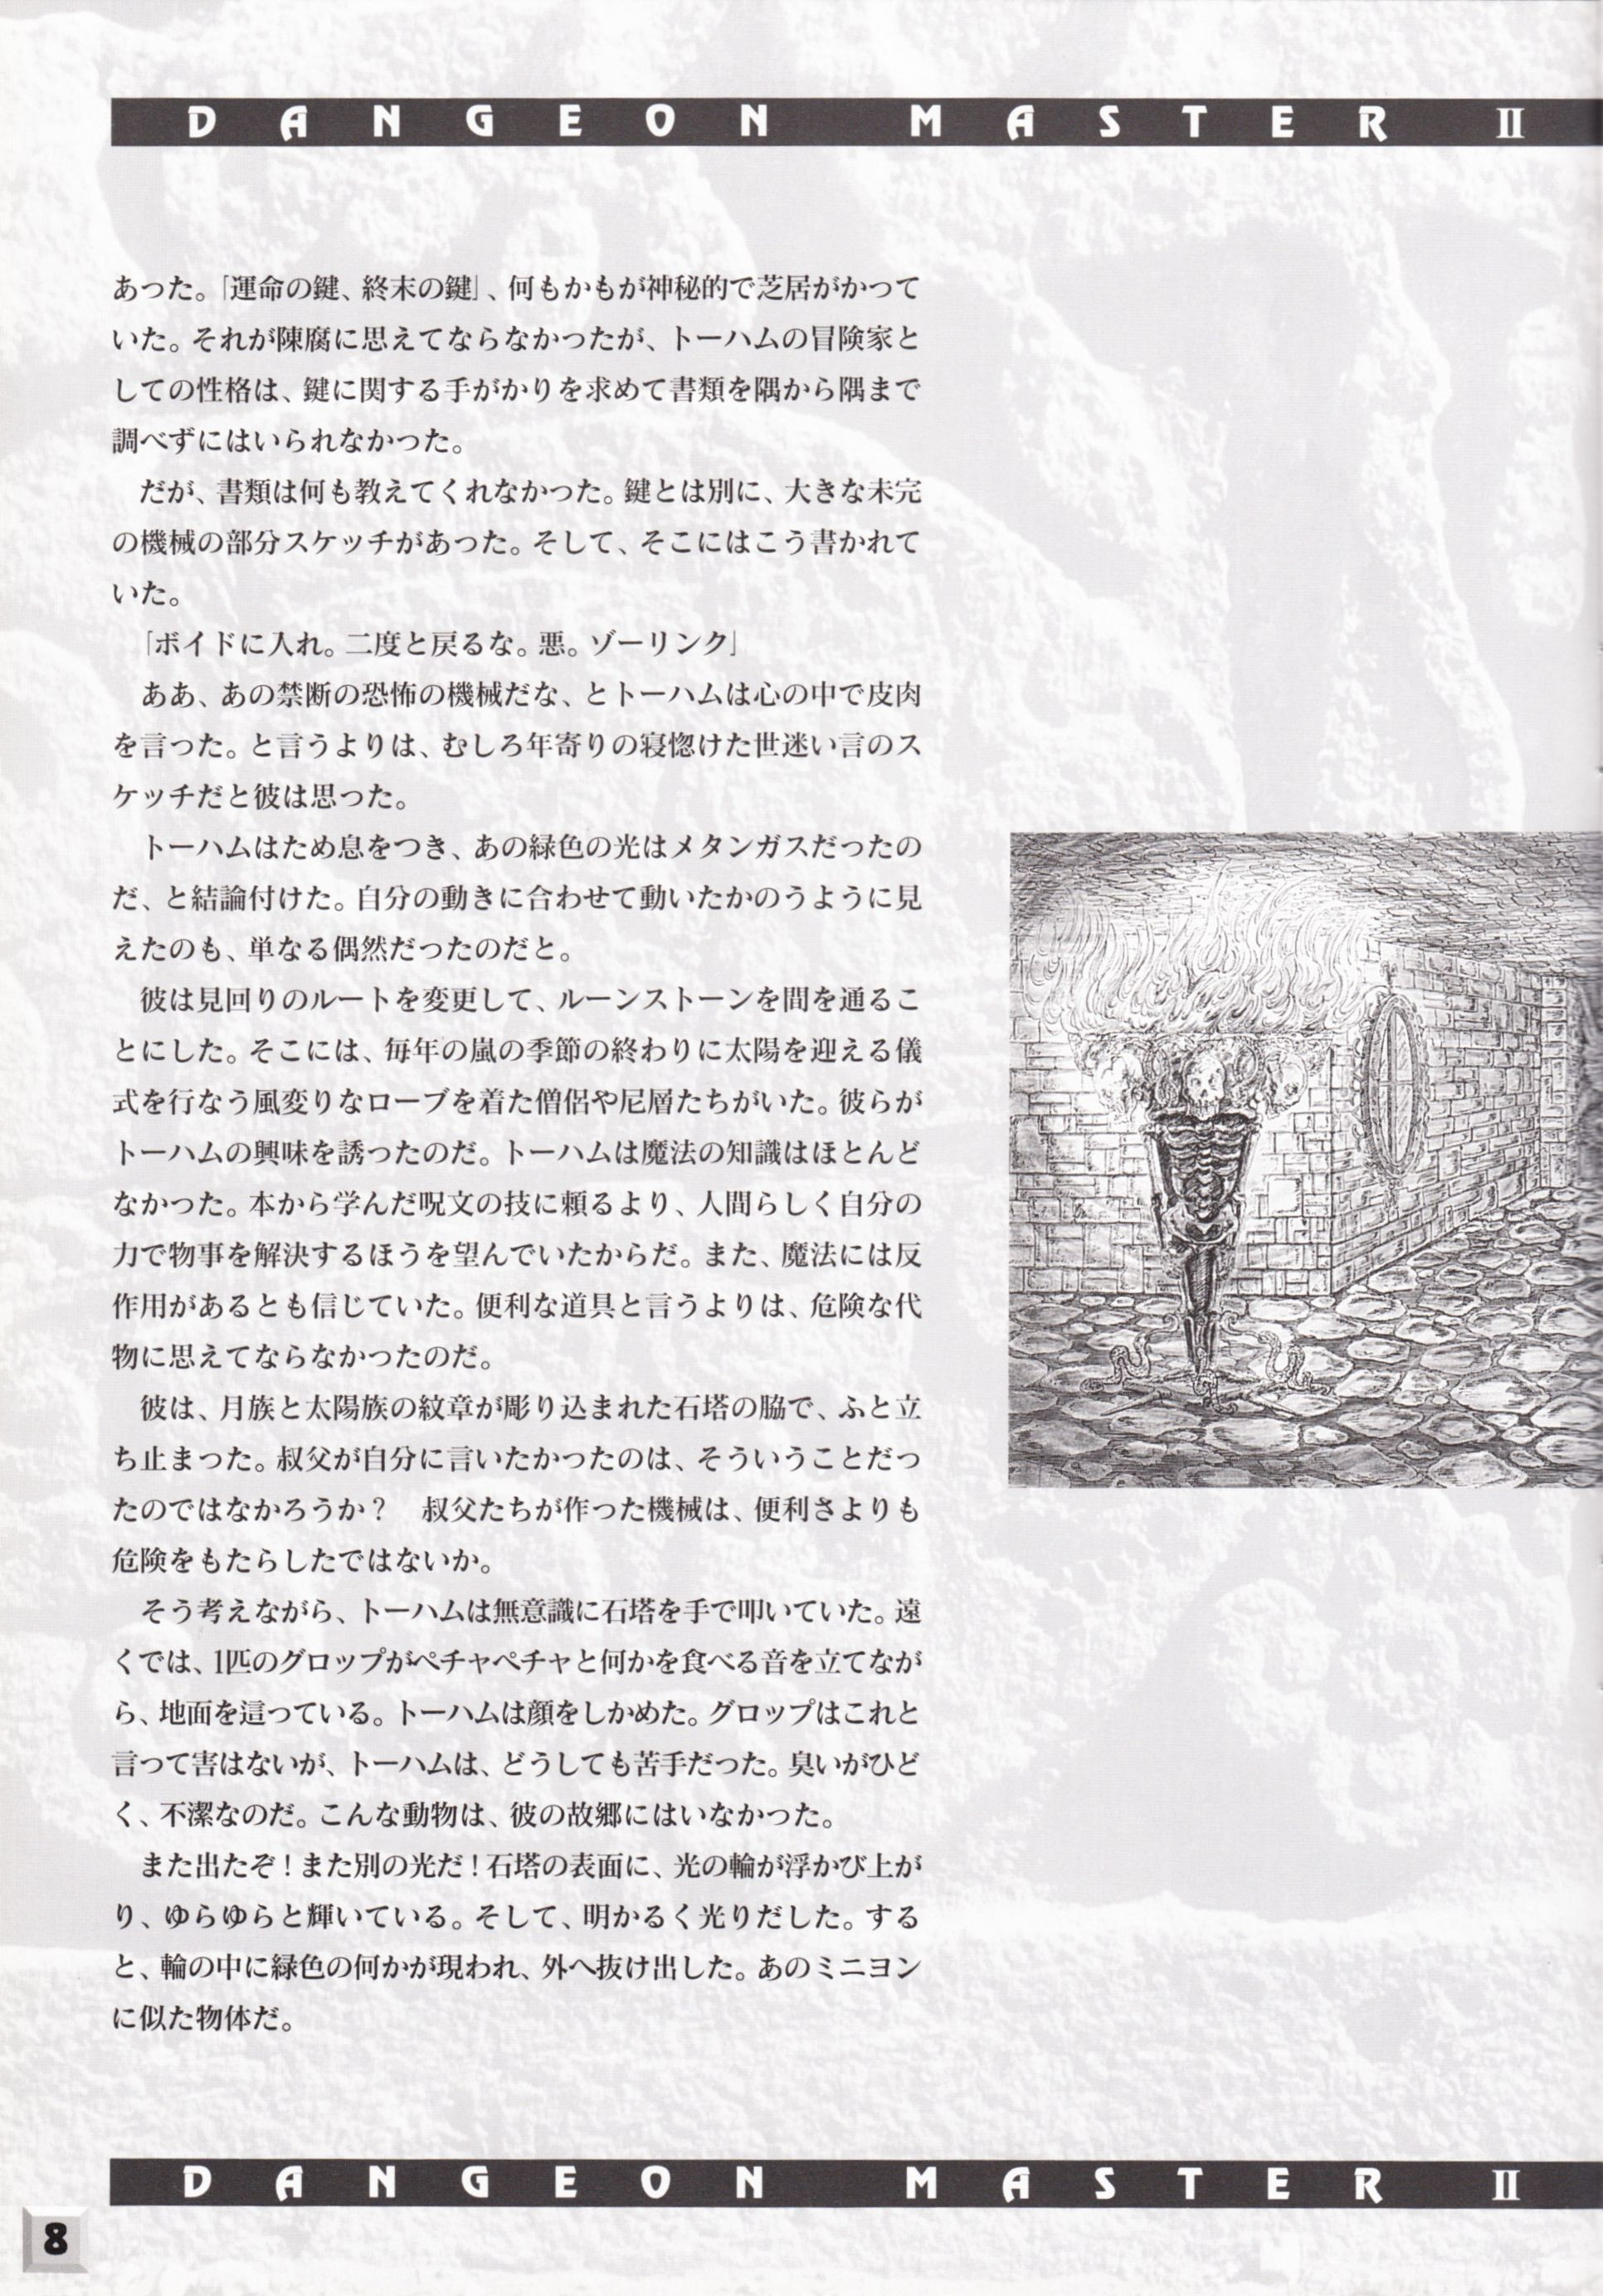 Game - Dungeon Master II - JP - PC-9801 - 3.5-inch - The Guidance Of Adventure - Page 010 - Scan